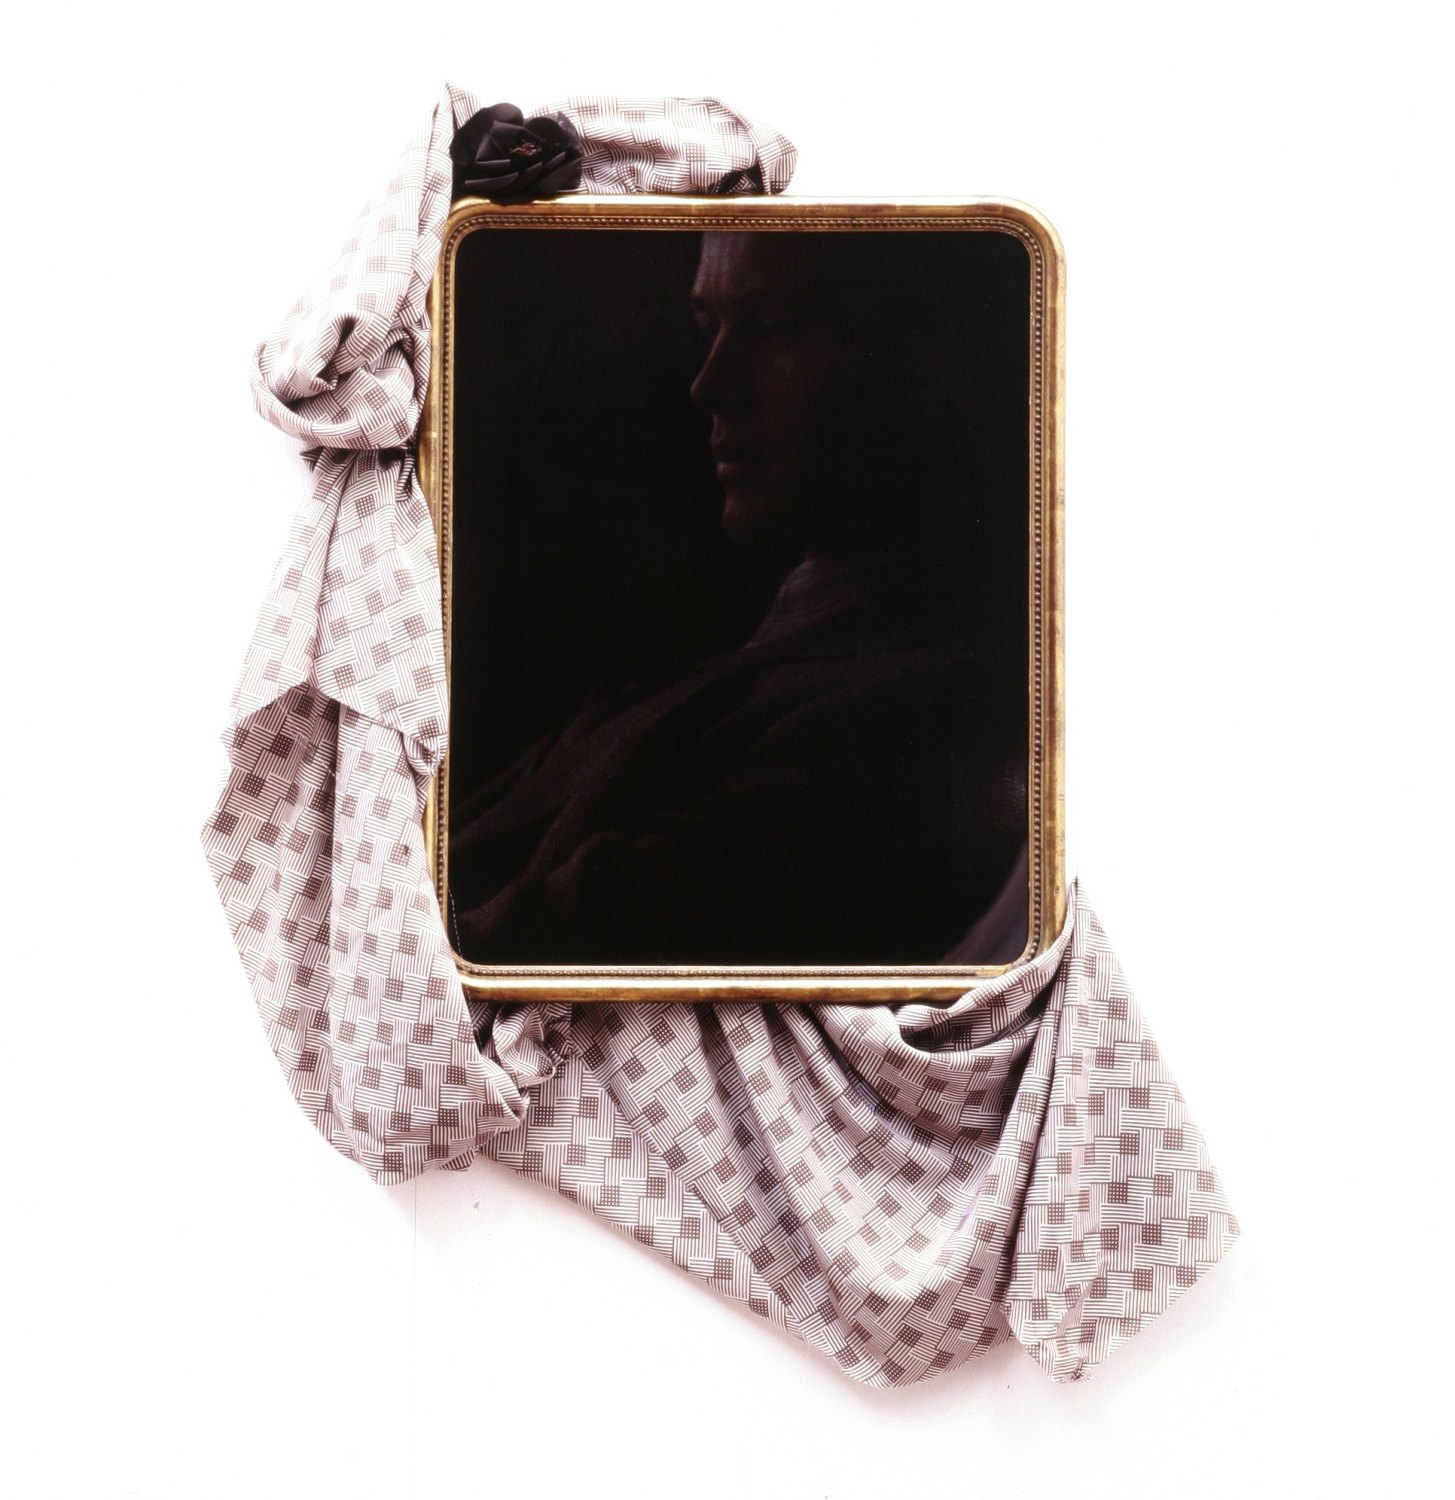 Kai Althoff Untitled, 2004 Photography on aluminum foil in antique frame, fabric, flower, 62 × 49 cm